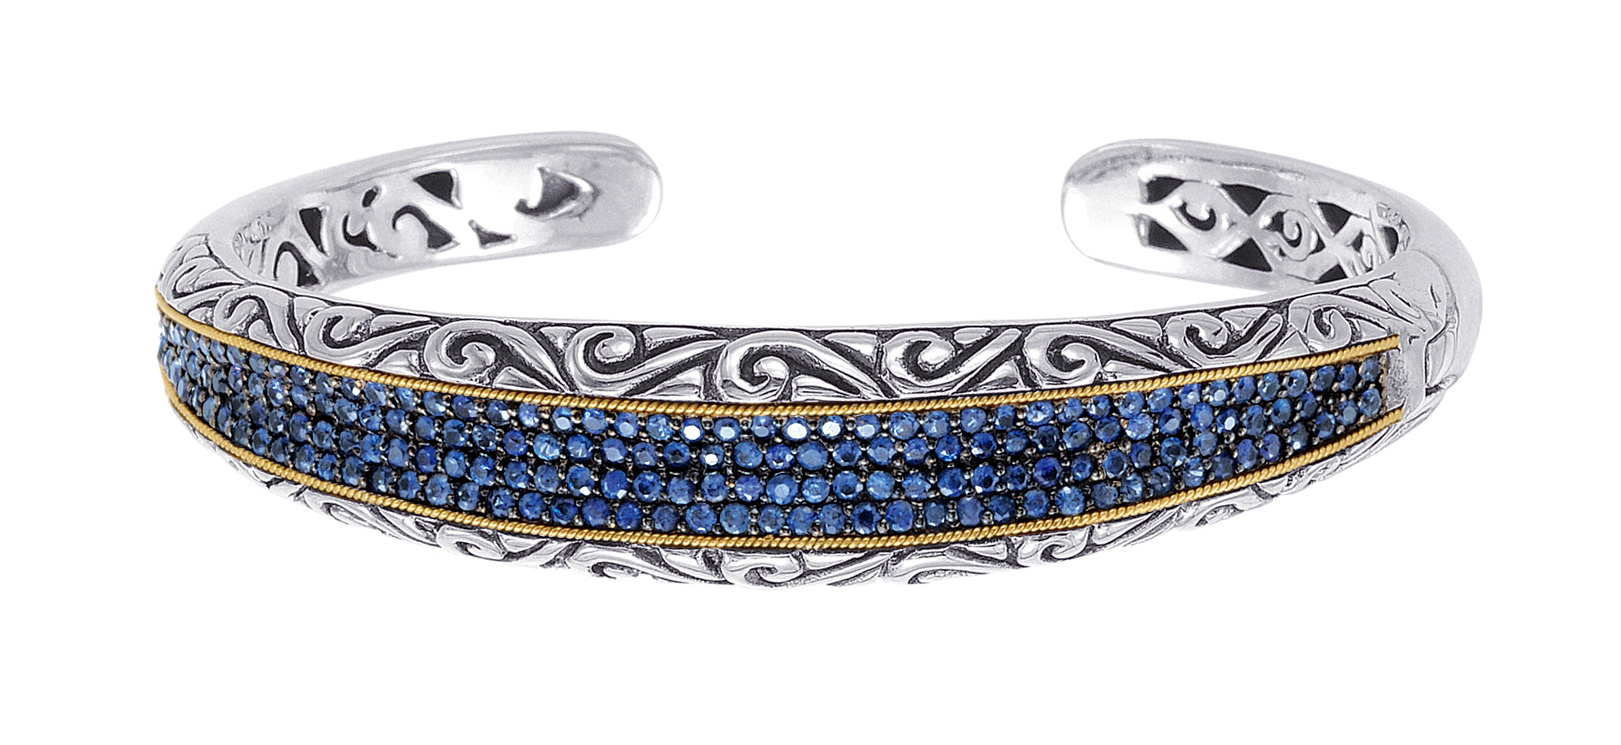 Alesandro Menegati 18K Accented Sterling Silver Bangle with Blue Sapphires. Price: $1262.80